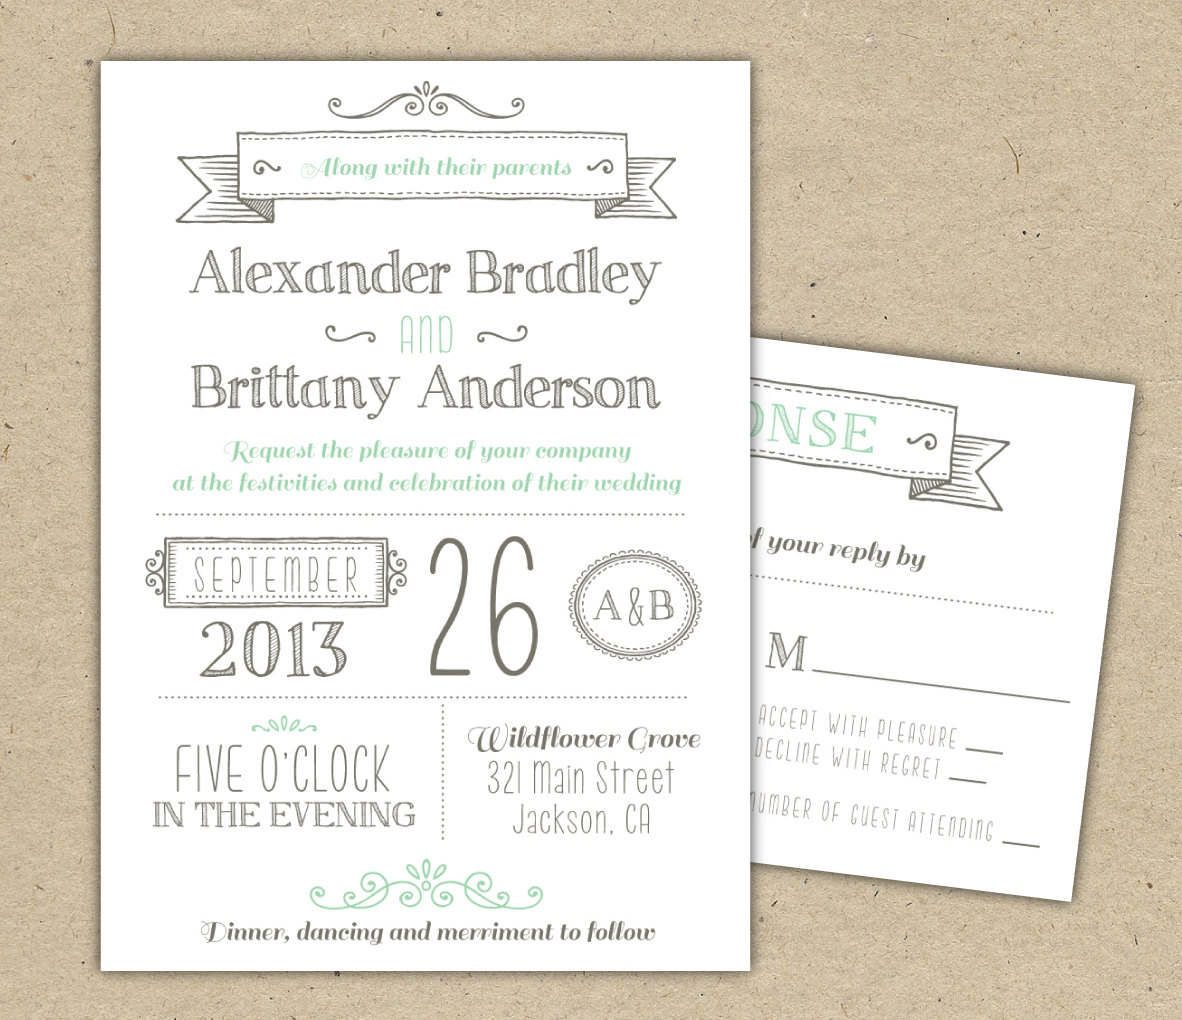 Free Wedding Invitations Printables Designs | prosklhthria ...